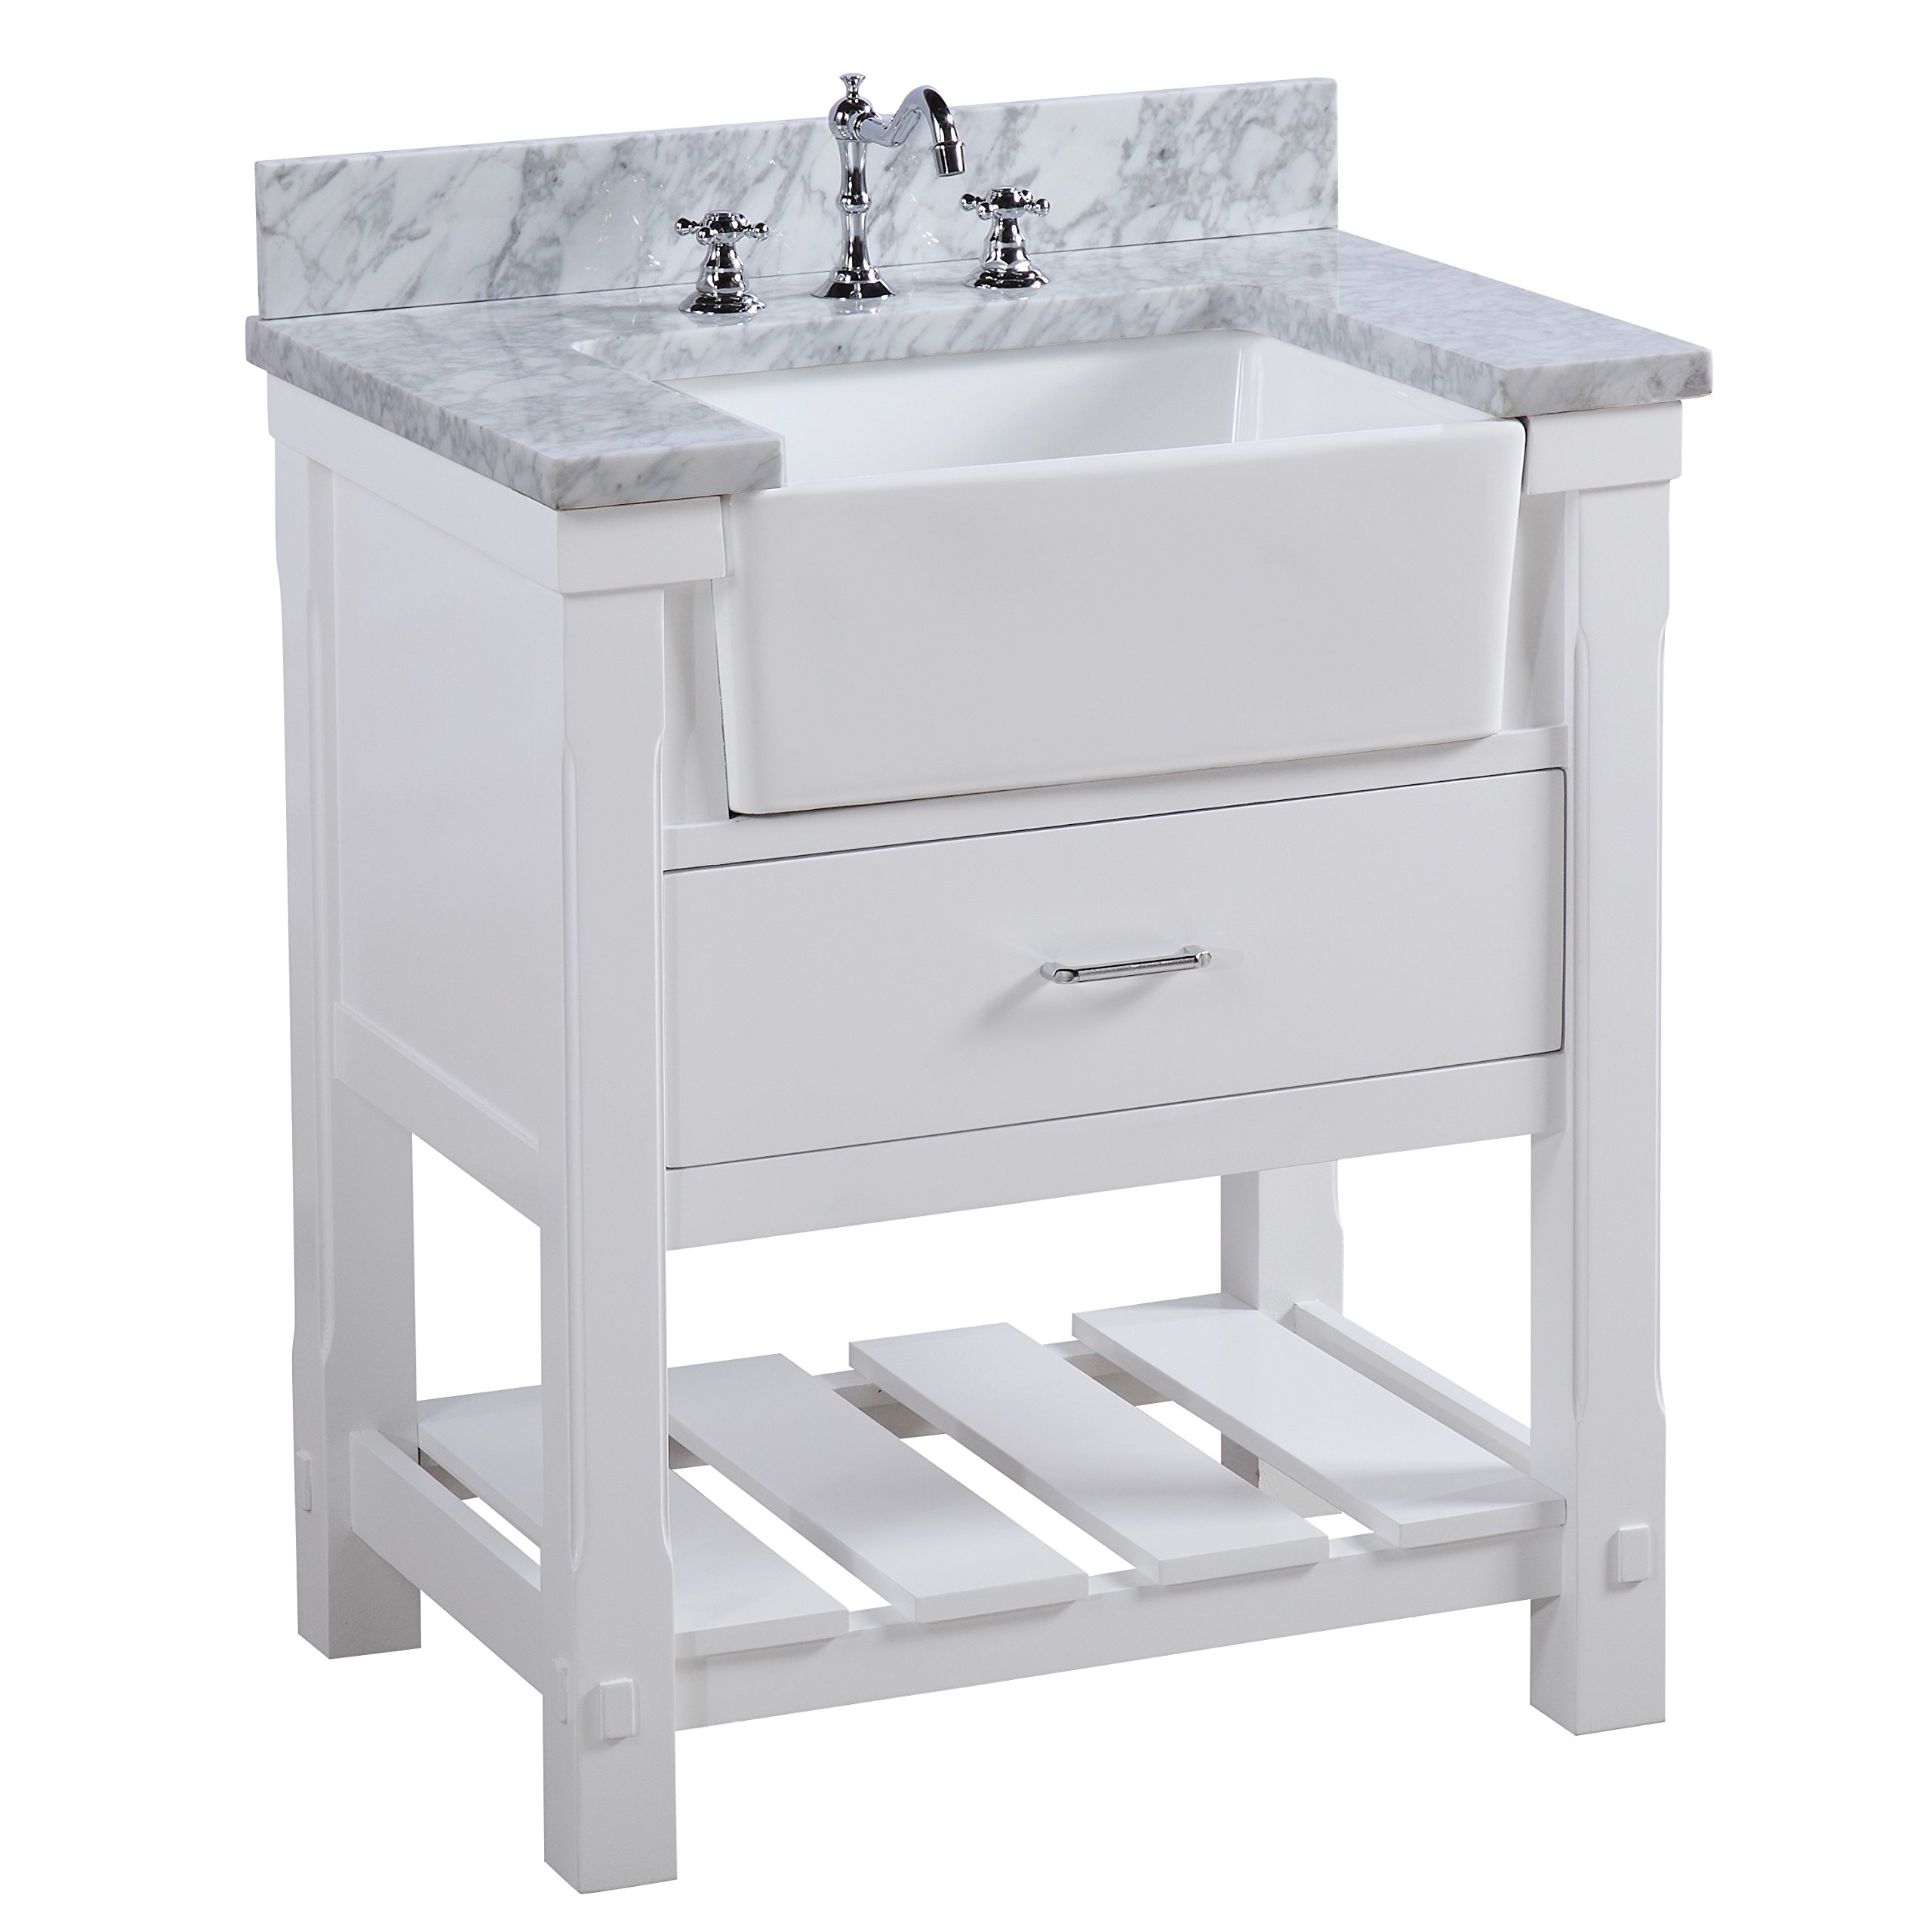 Buy Charlotte 30 Inch Bathroom Vanity Carrara White Includes A Carrara Marble Countertop White Cabinet With Soft Close Drawers And White Ceramic Farmhouse Apron Sink In Cheap Price On Alibaba Com